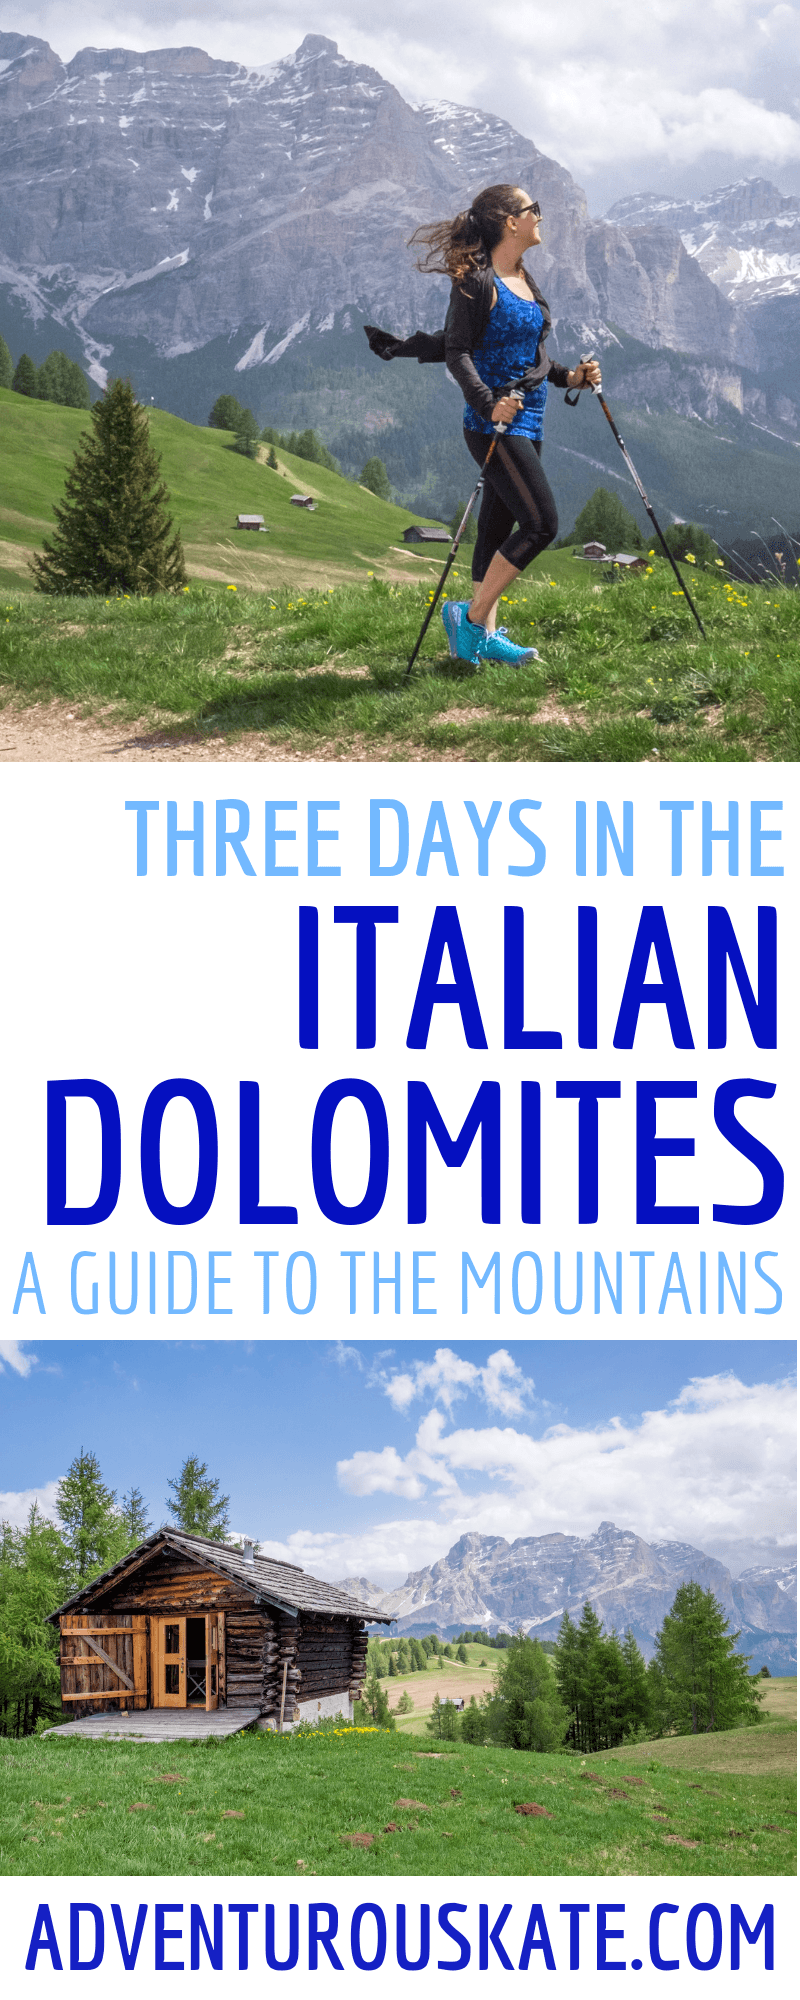 Three Days in the Italian Dolomites (Pinterest Graphic)